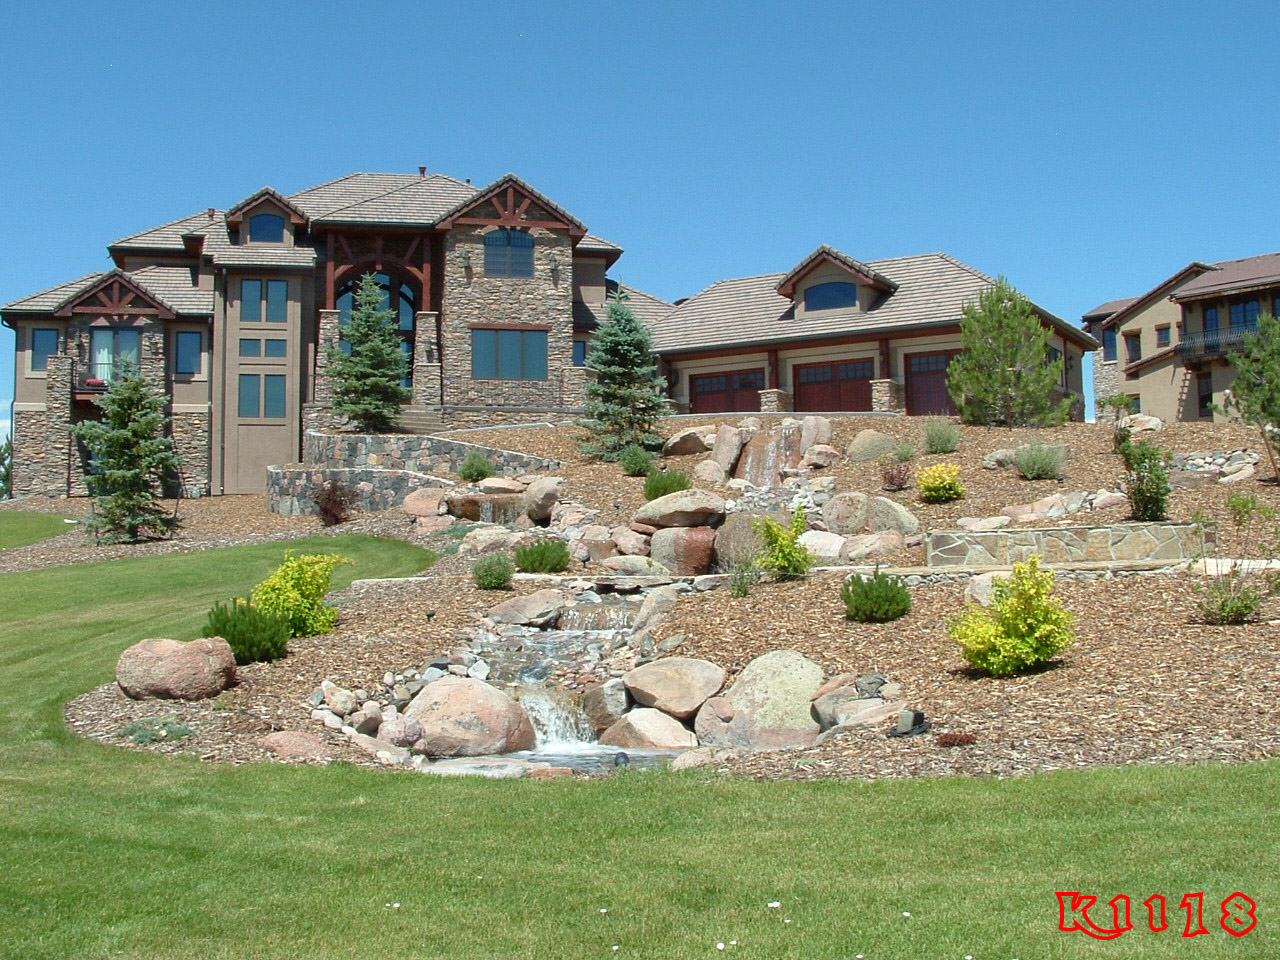 Here you go front lawn landscaping ideas side of hill for Rock garden designs front yard